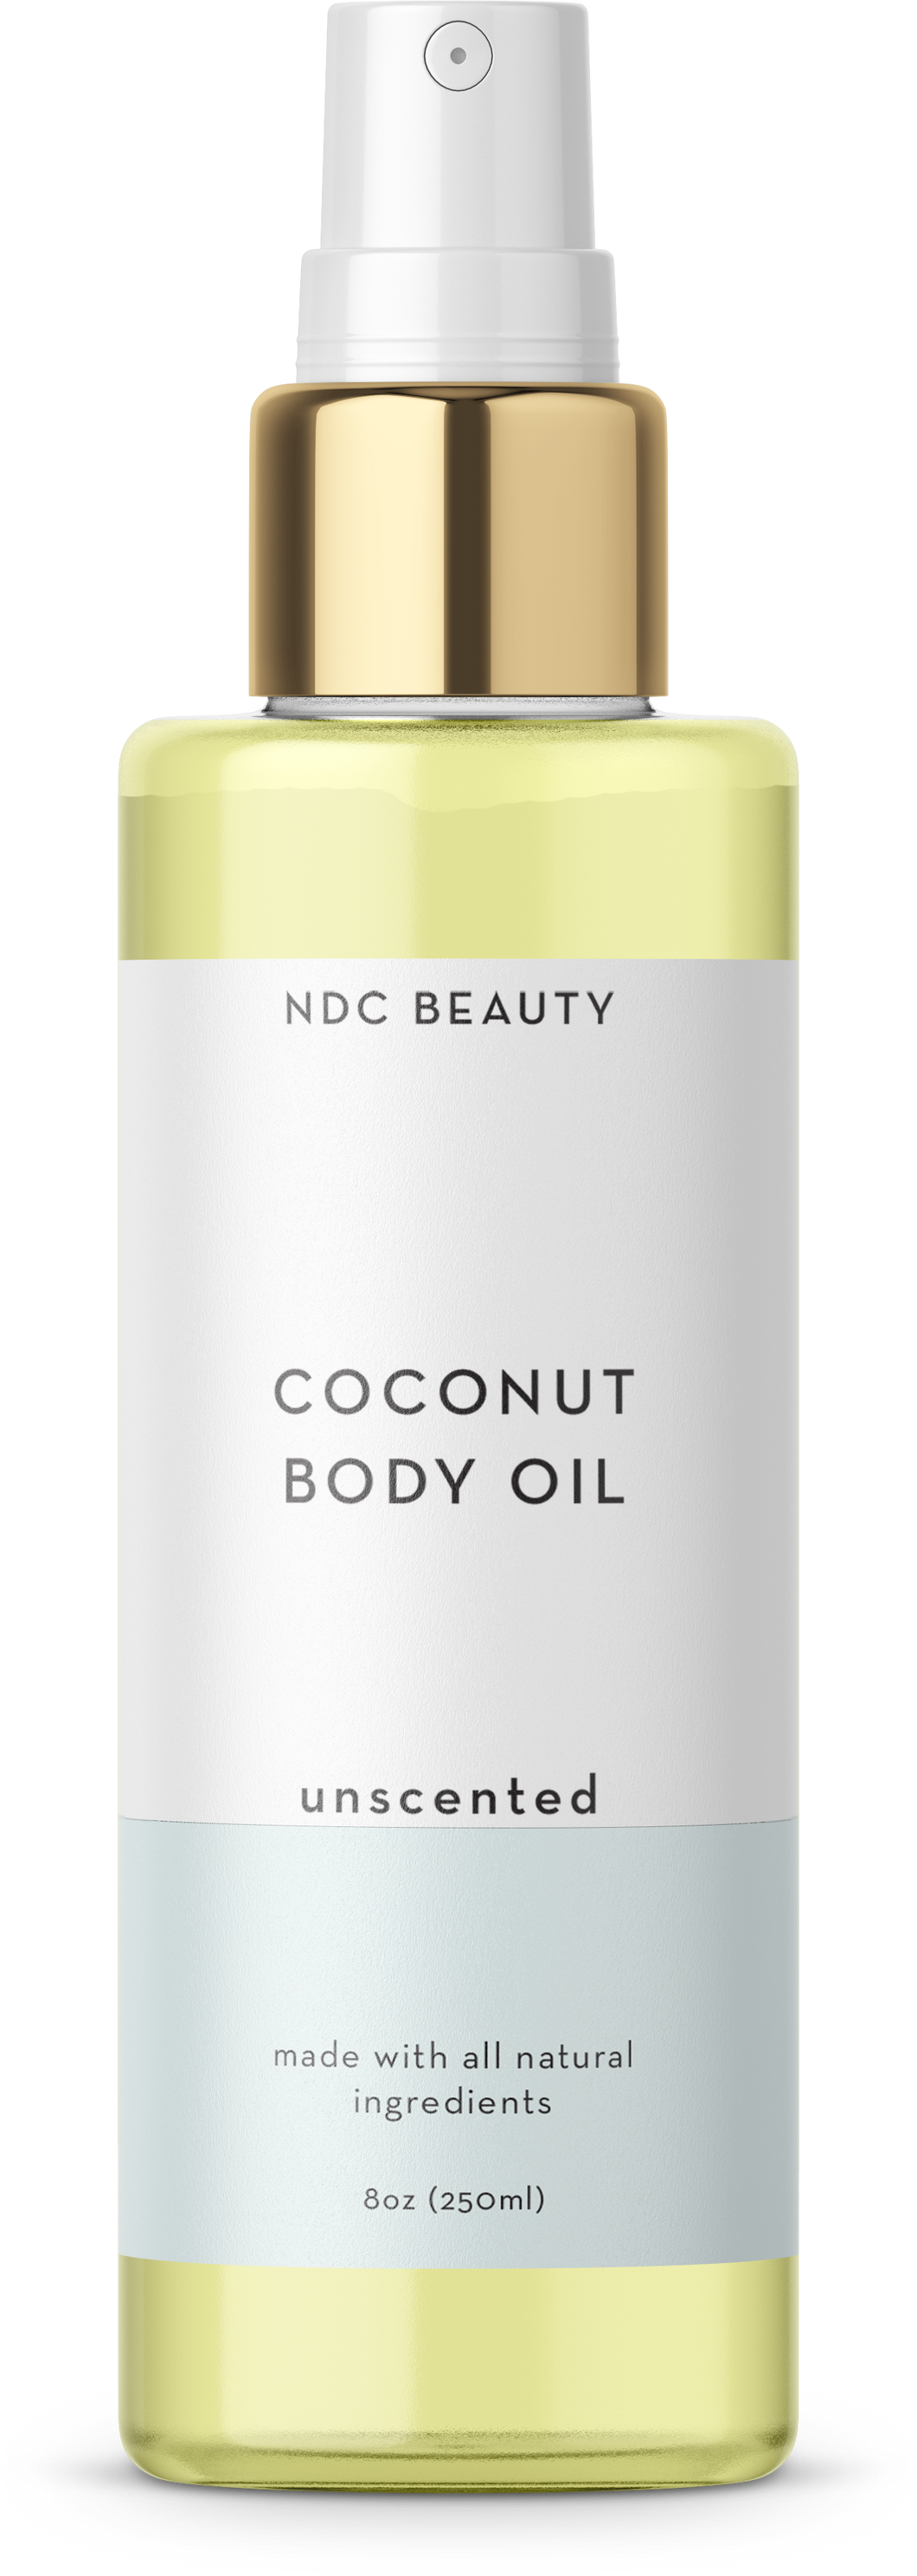 ndc beauty unscented coconut body oil